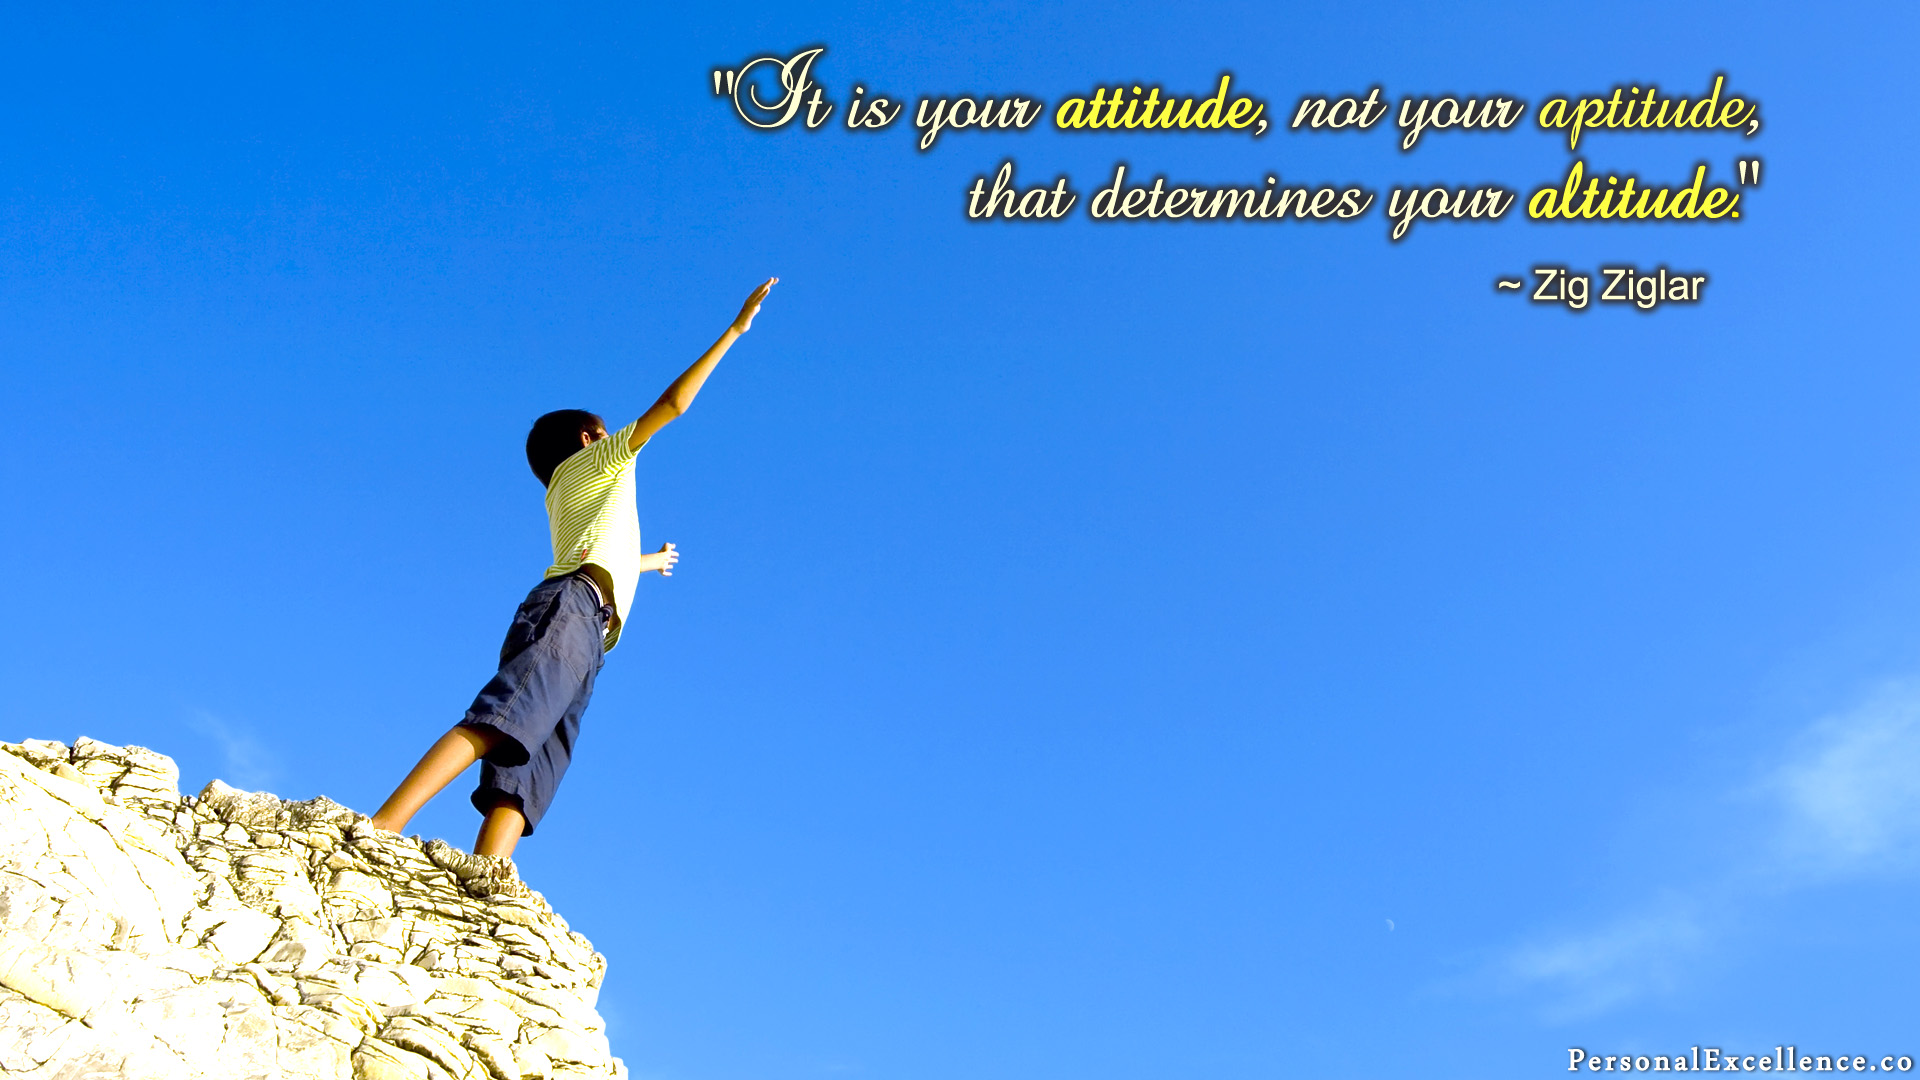 Motivational Quotes On Attitude Wallpapers 15 Beautiful Inspirational Wallpapers For Your Desktop